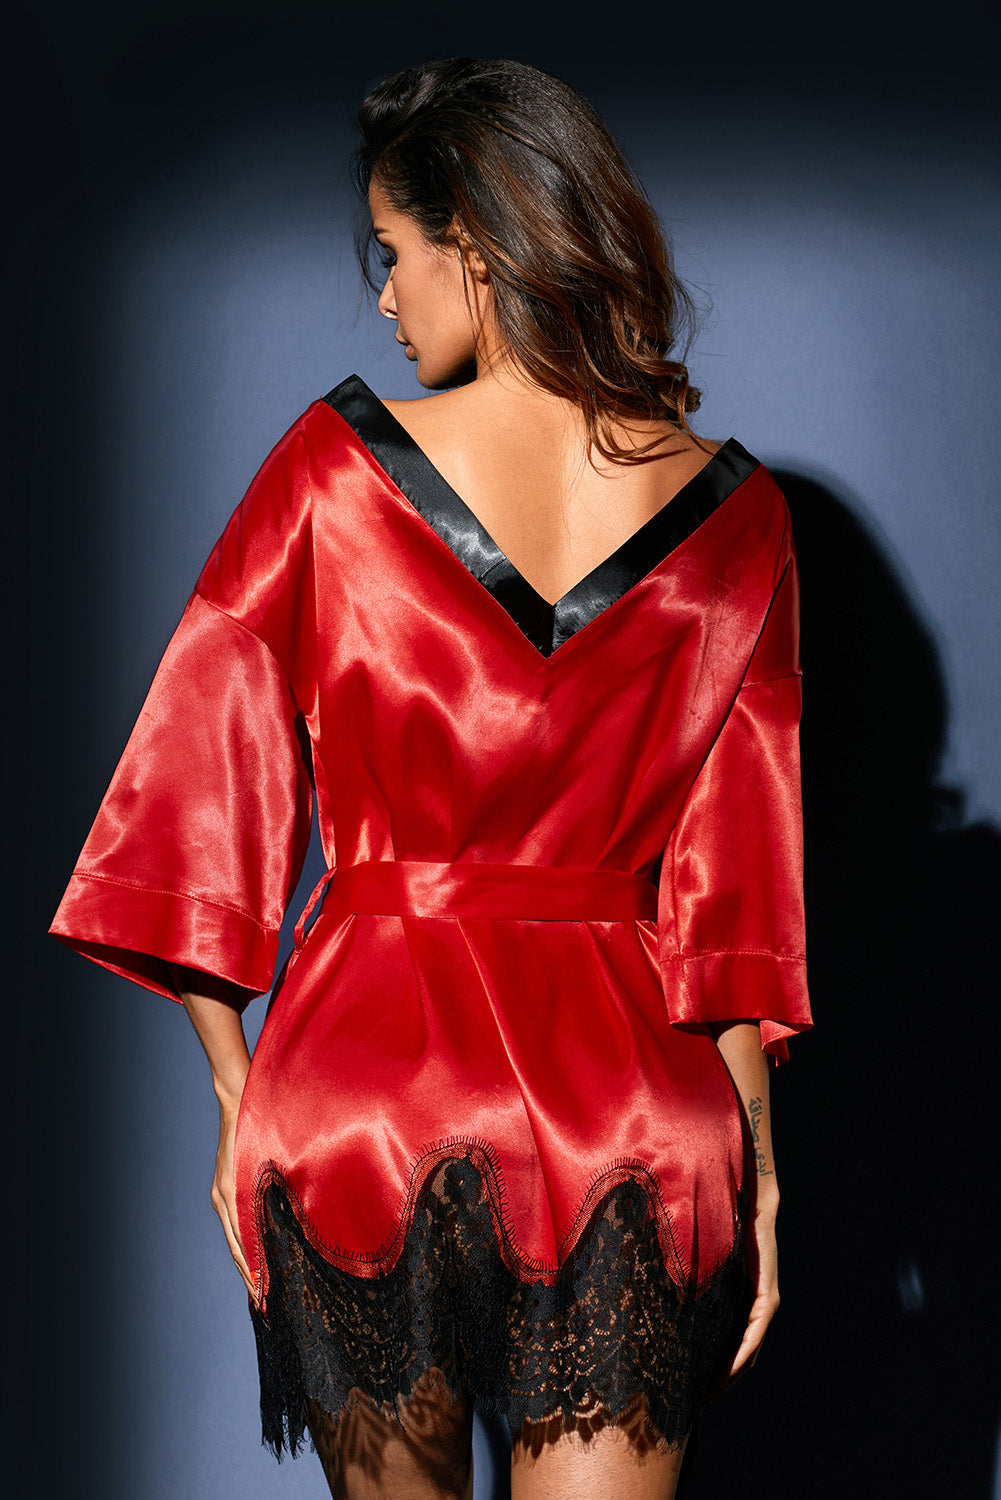 3185faaf7a133 Sexy Red Luxurious Satin Robe Nightwear – SEXY AFFORDABLE CLOTHING